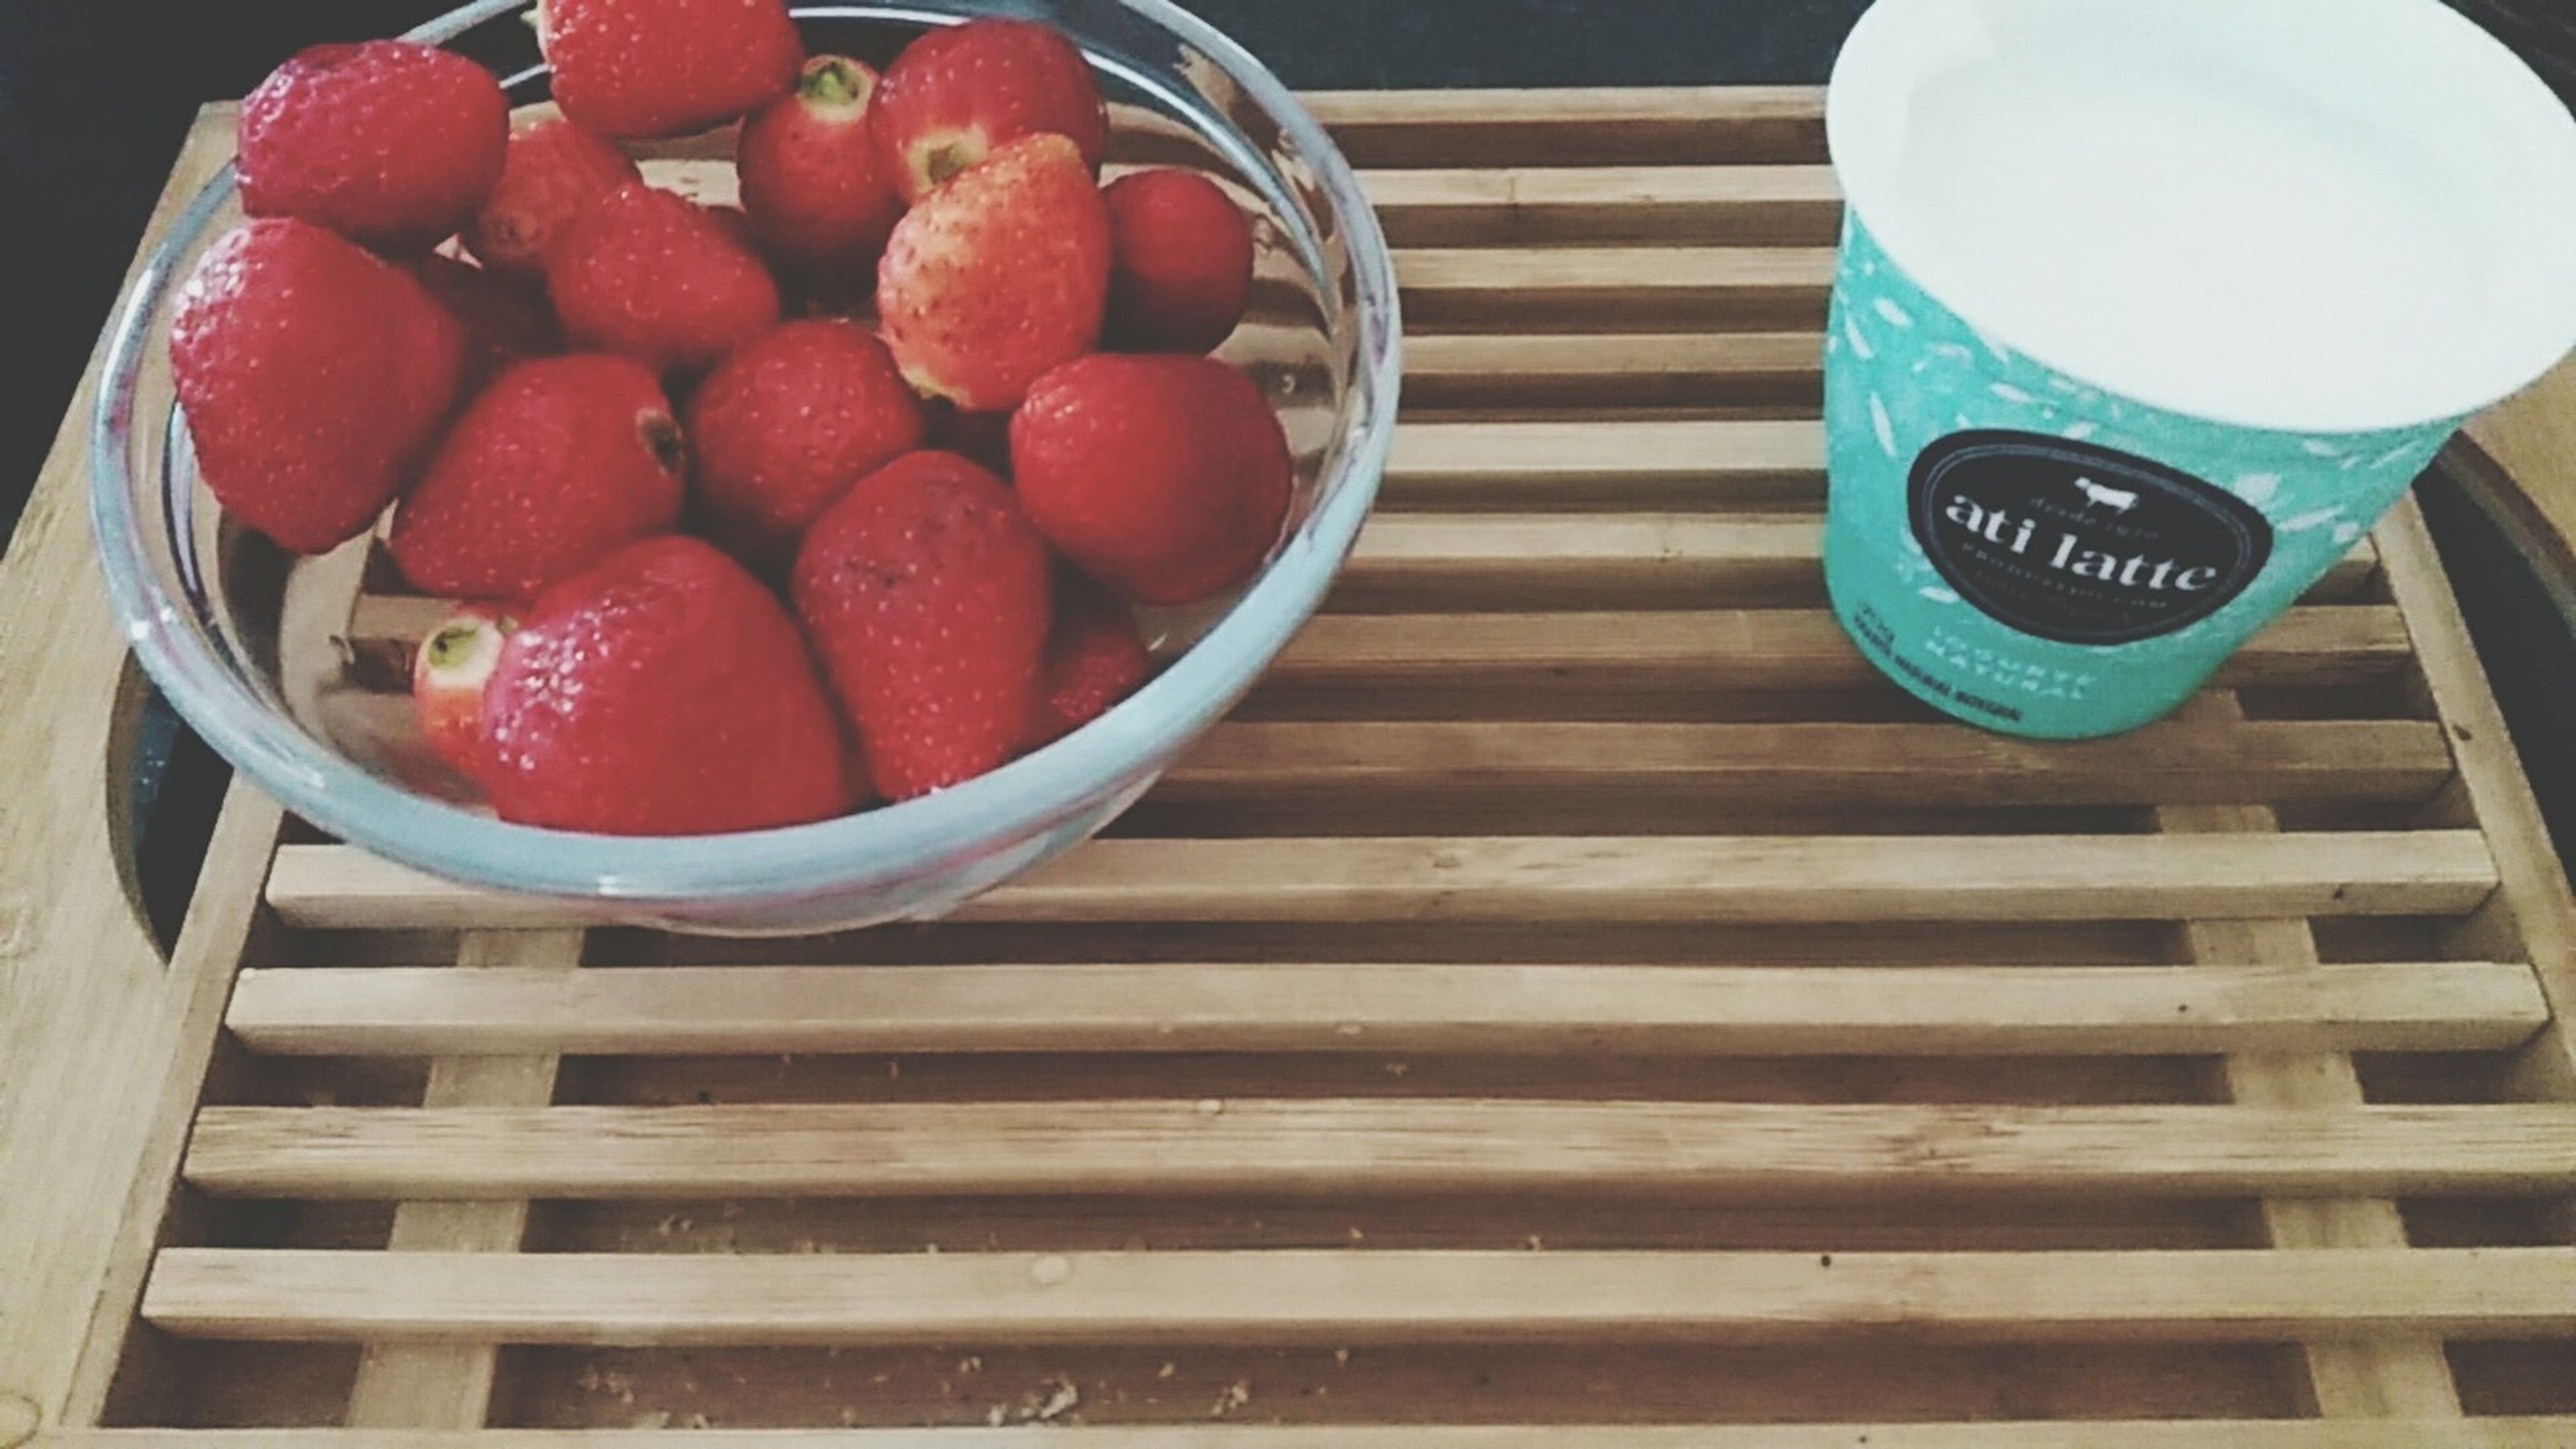 food and drink, red, food, freshness, indoors, fruit, high angle view, healthy eating, table, still life, bowl, strawberry, directly above, wood - material, container, no people, day, close-up, refreshment, plate